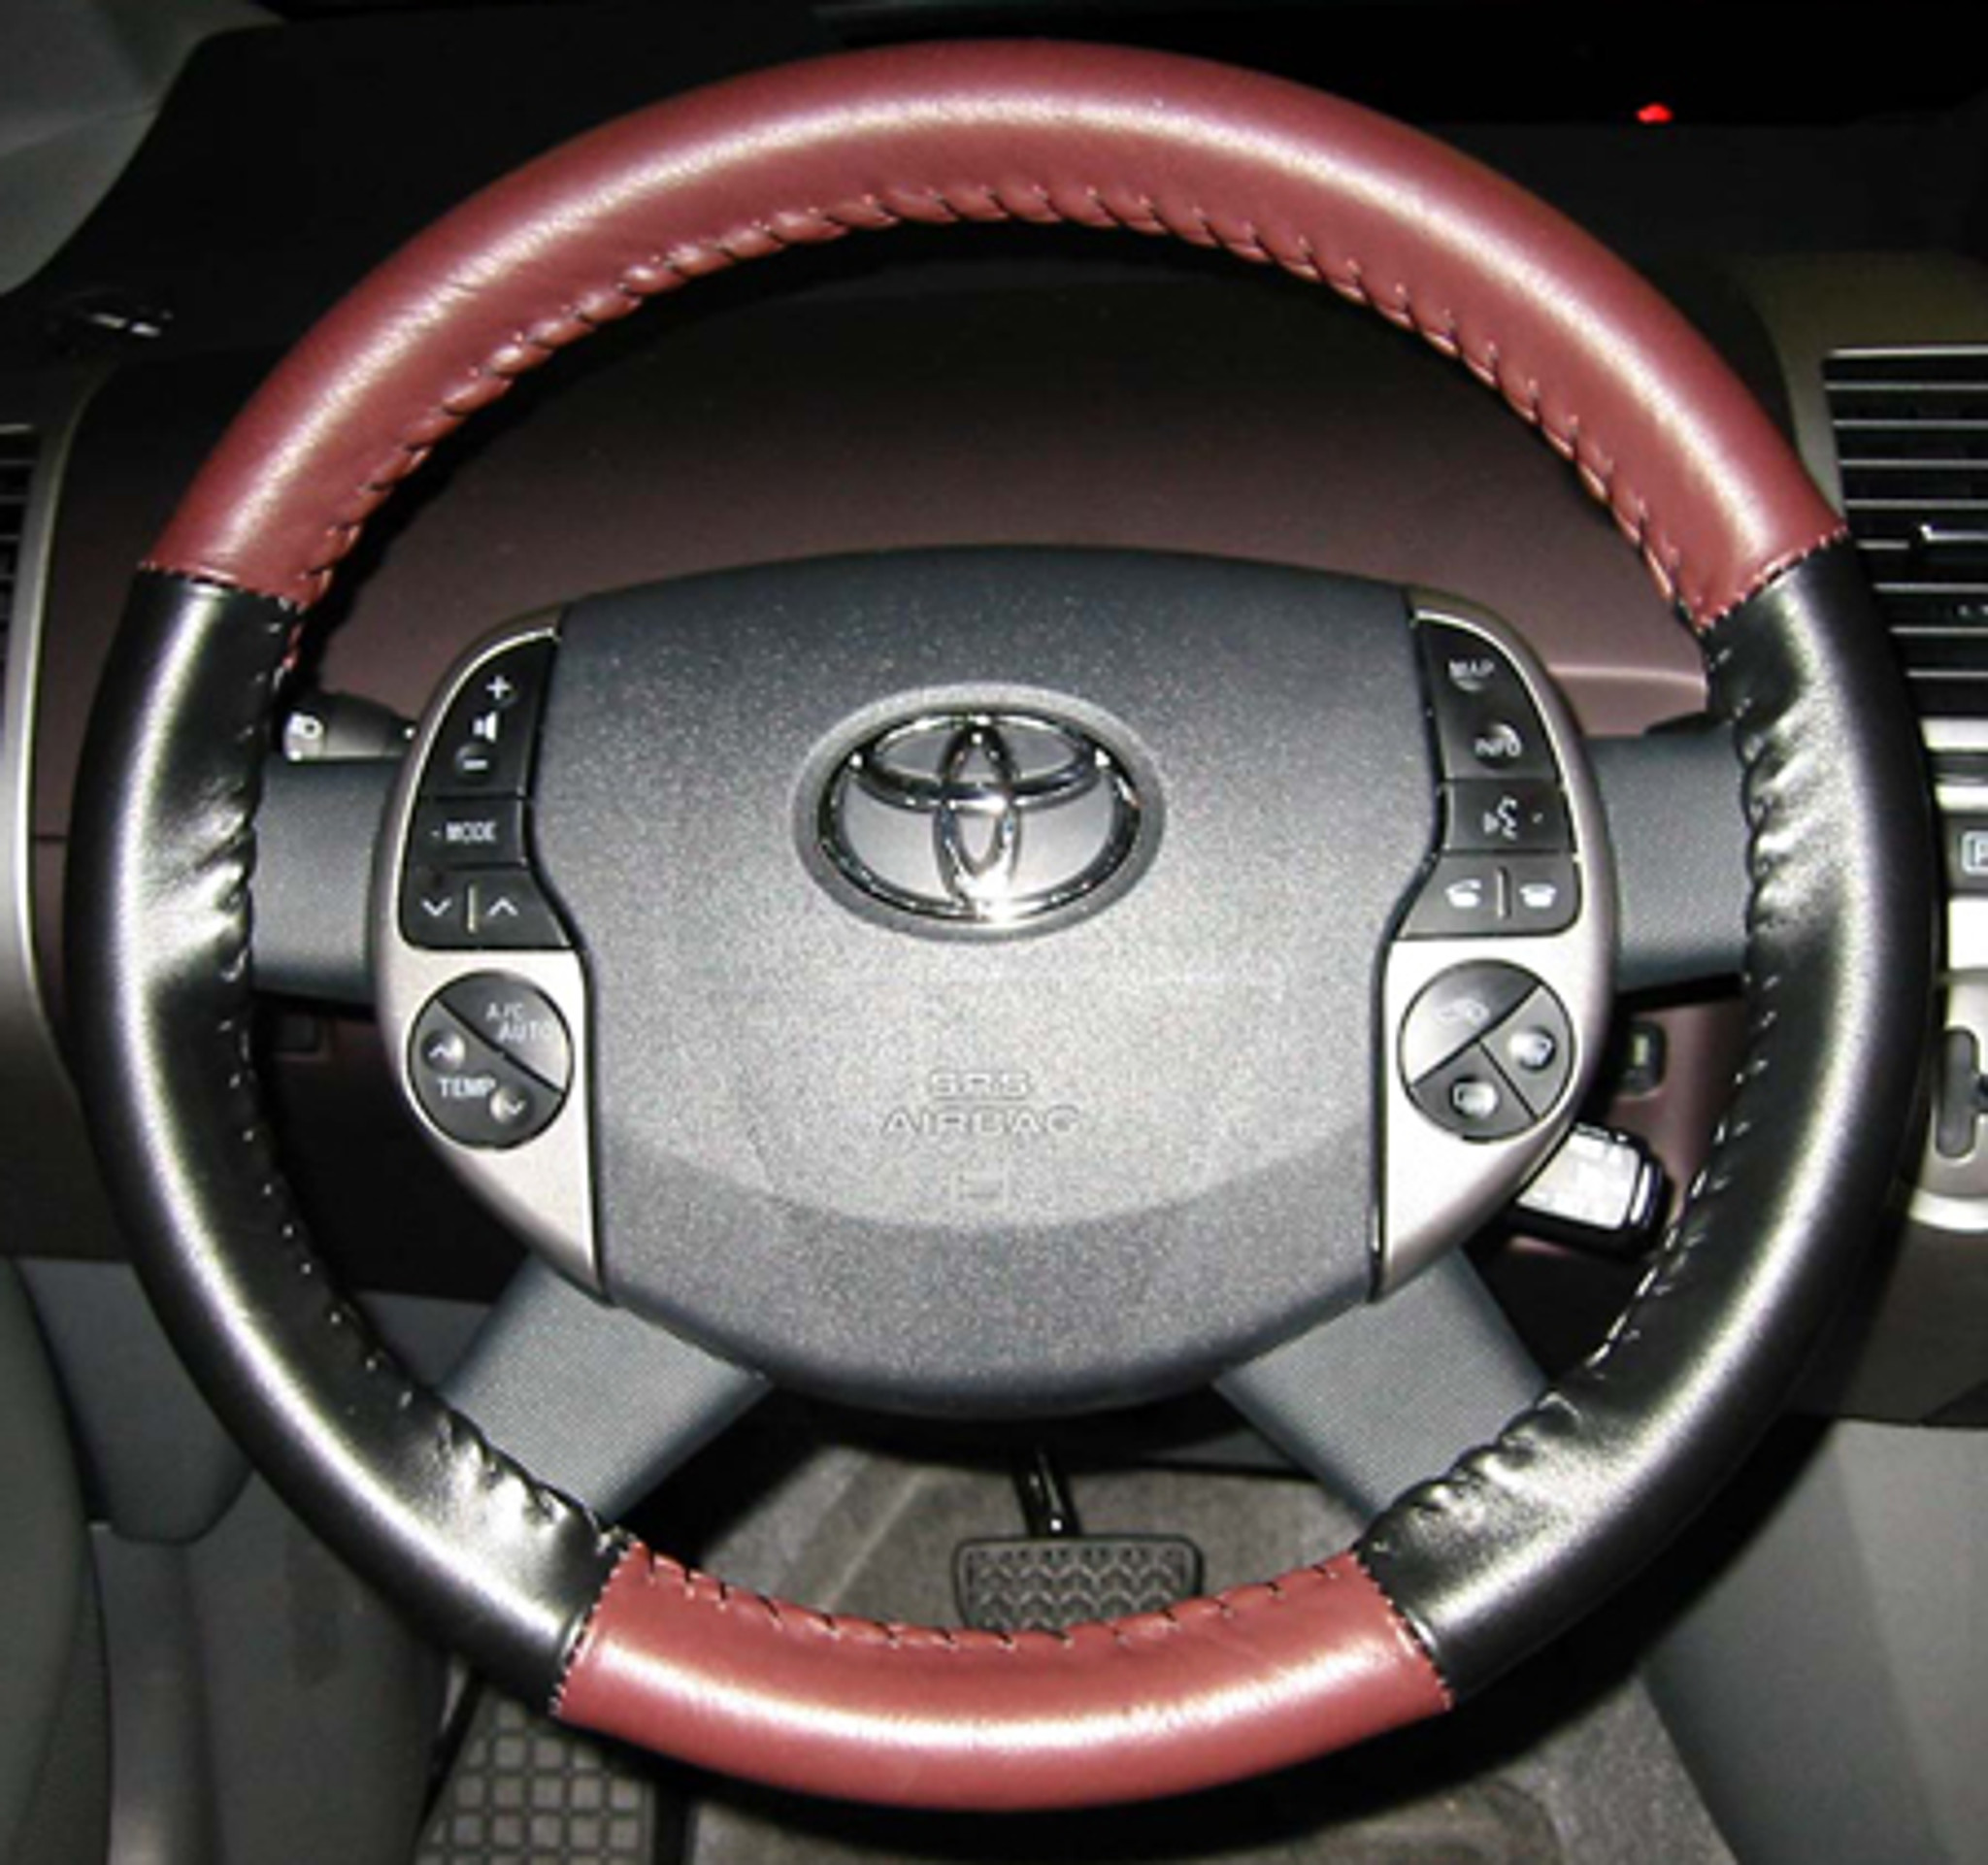 wheelskins eurotone two color genuine leather steering wheel cover for 2012 2015 toyota prius c [ 2048 x 1921 Pixel ]